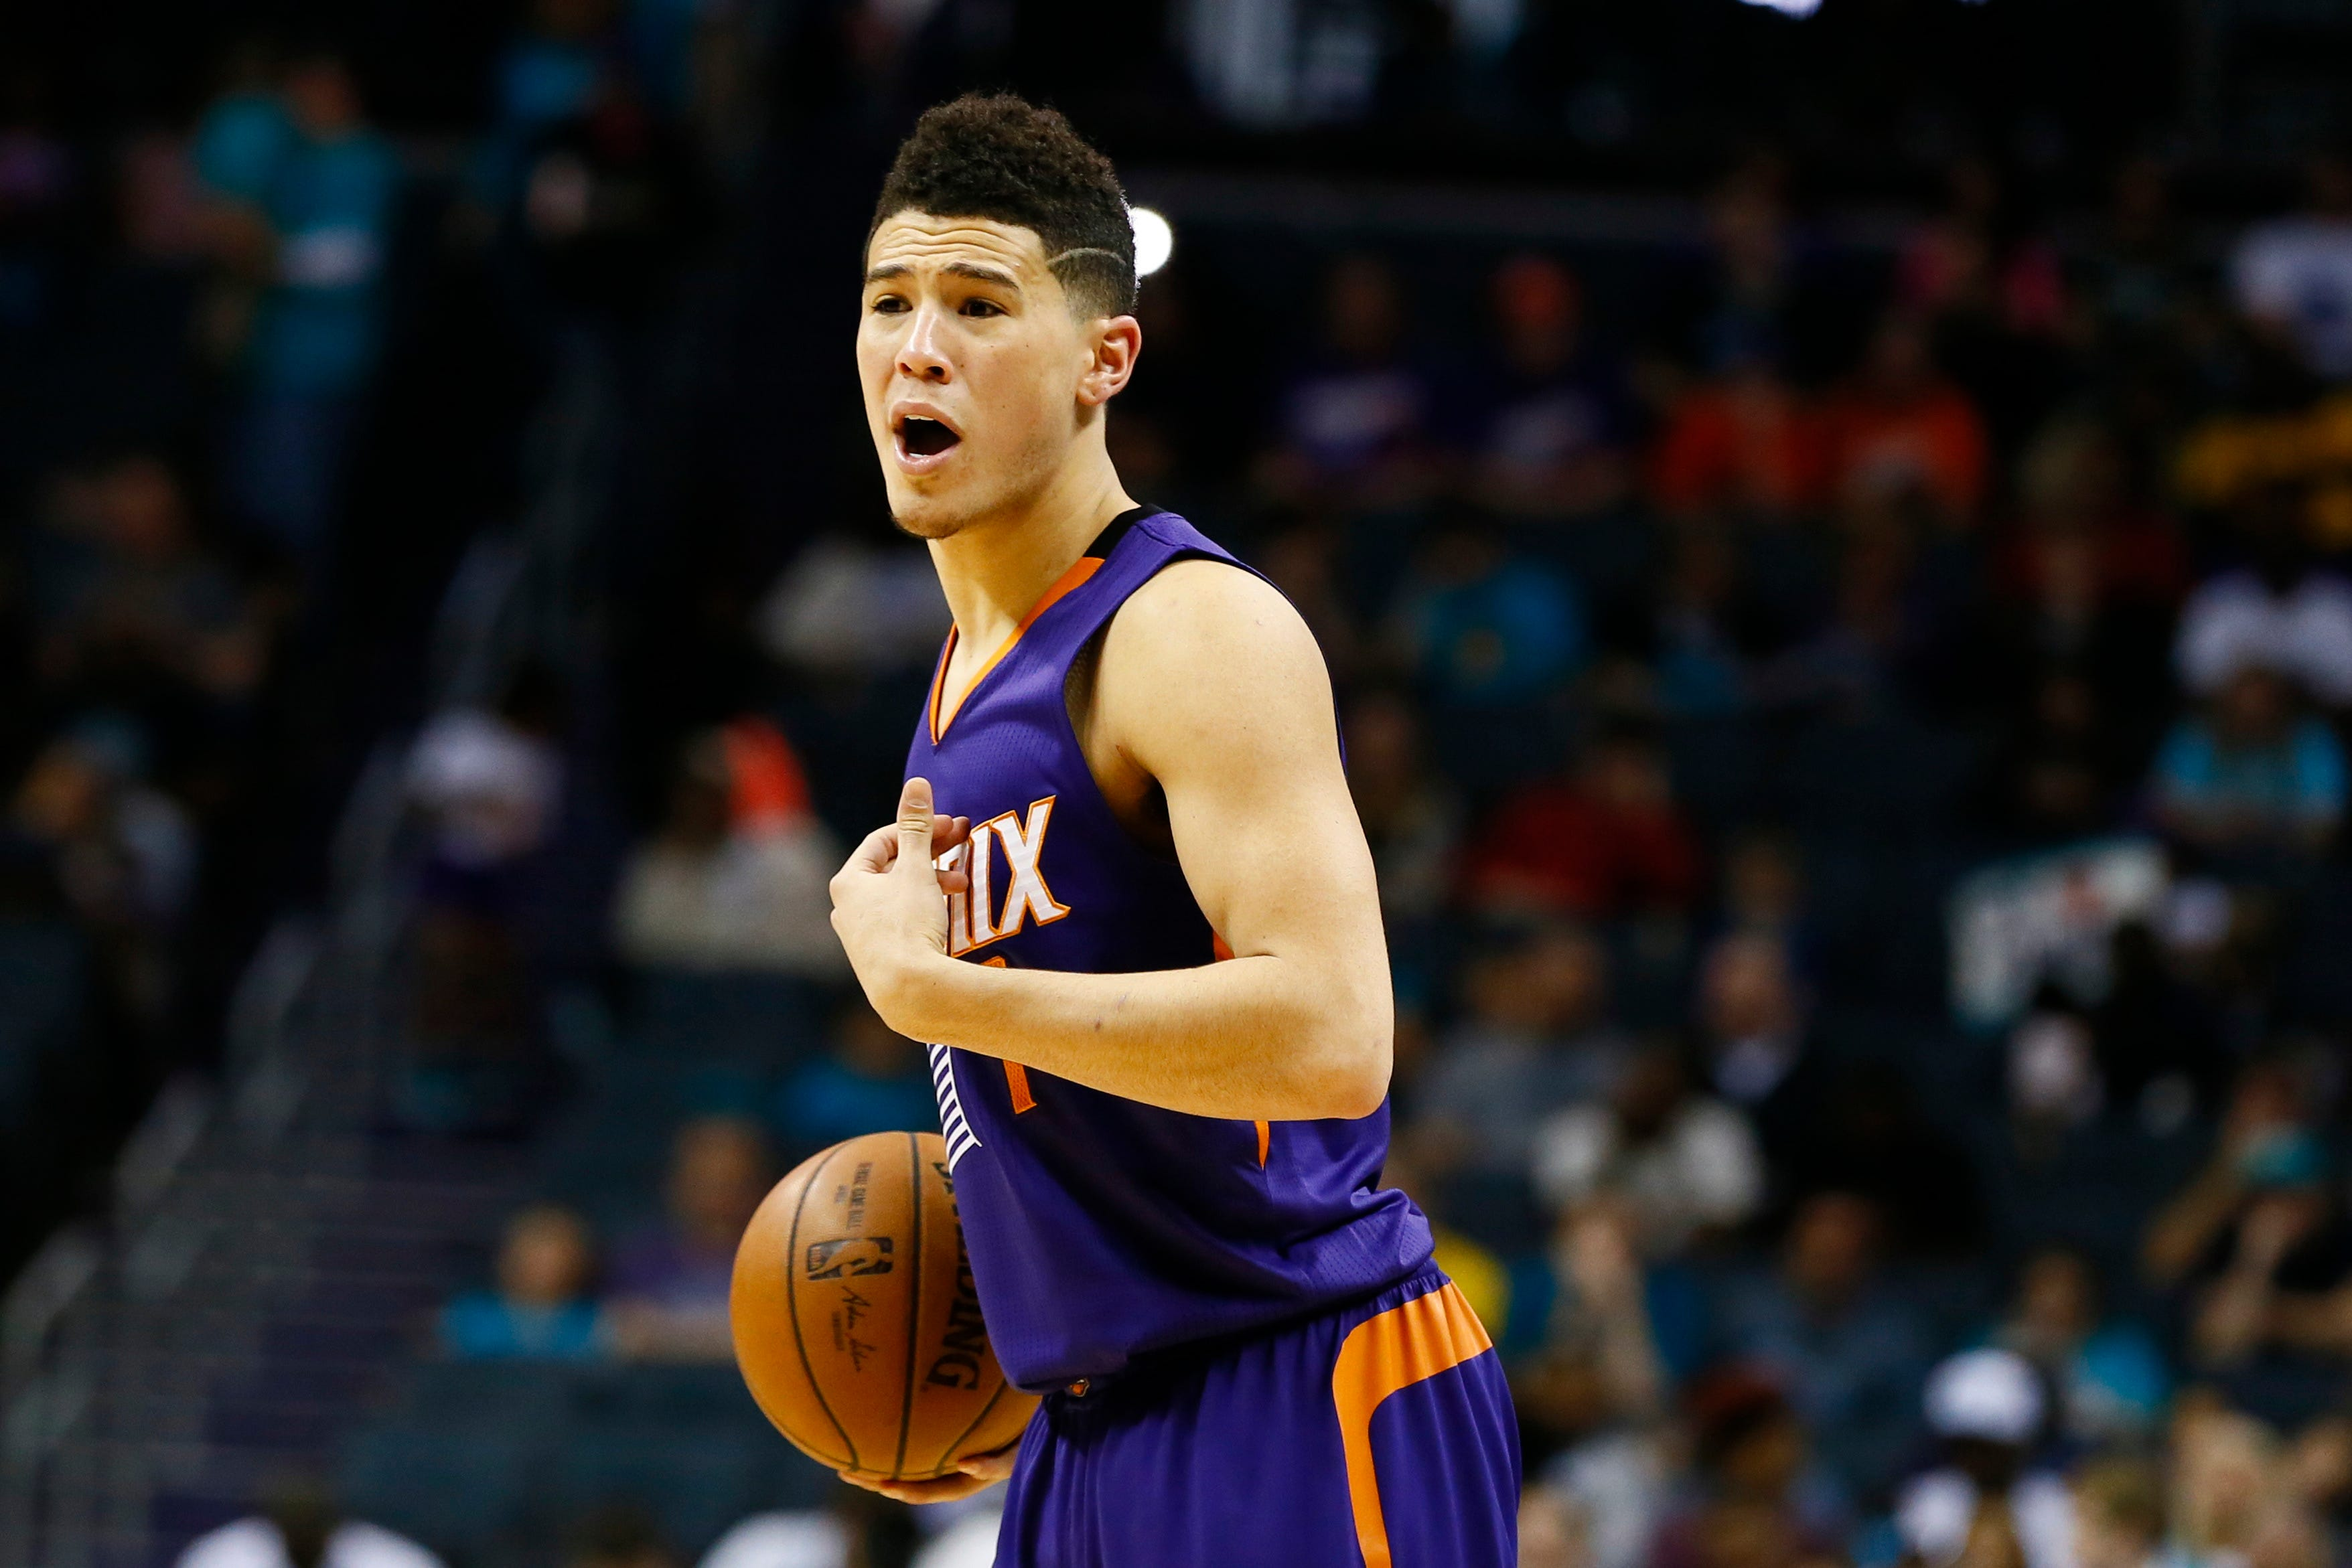 Suns' Devin Booker banged up, takes night off in Atlanta